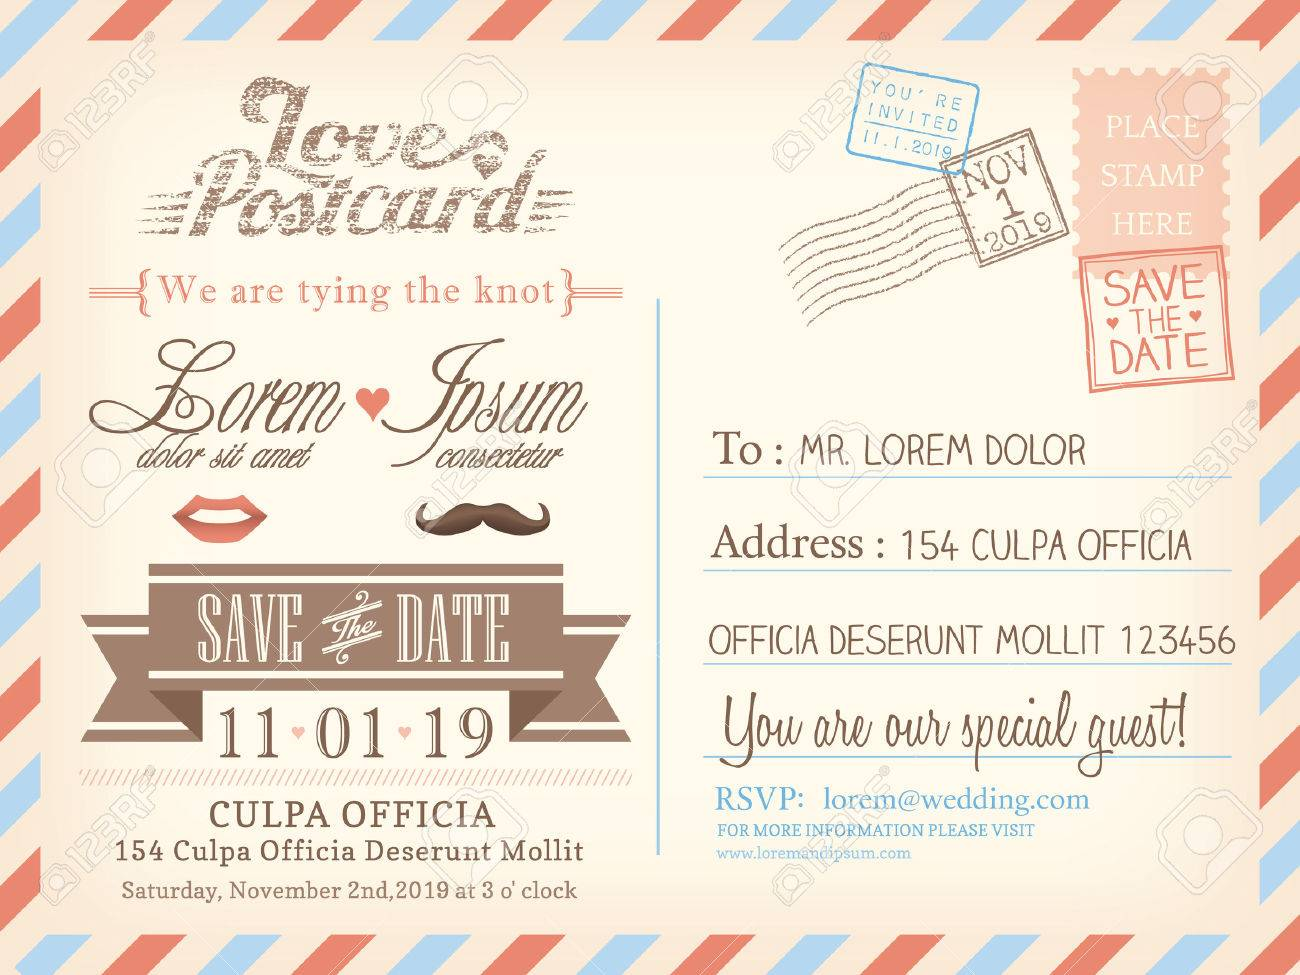 Vintage airmail postcard background template for wedding invitation..